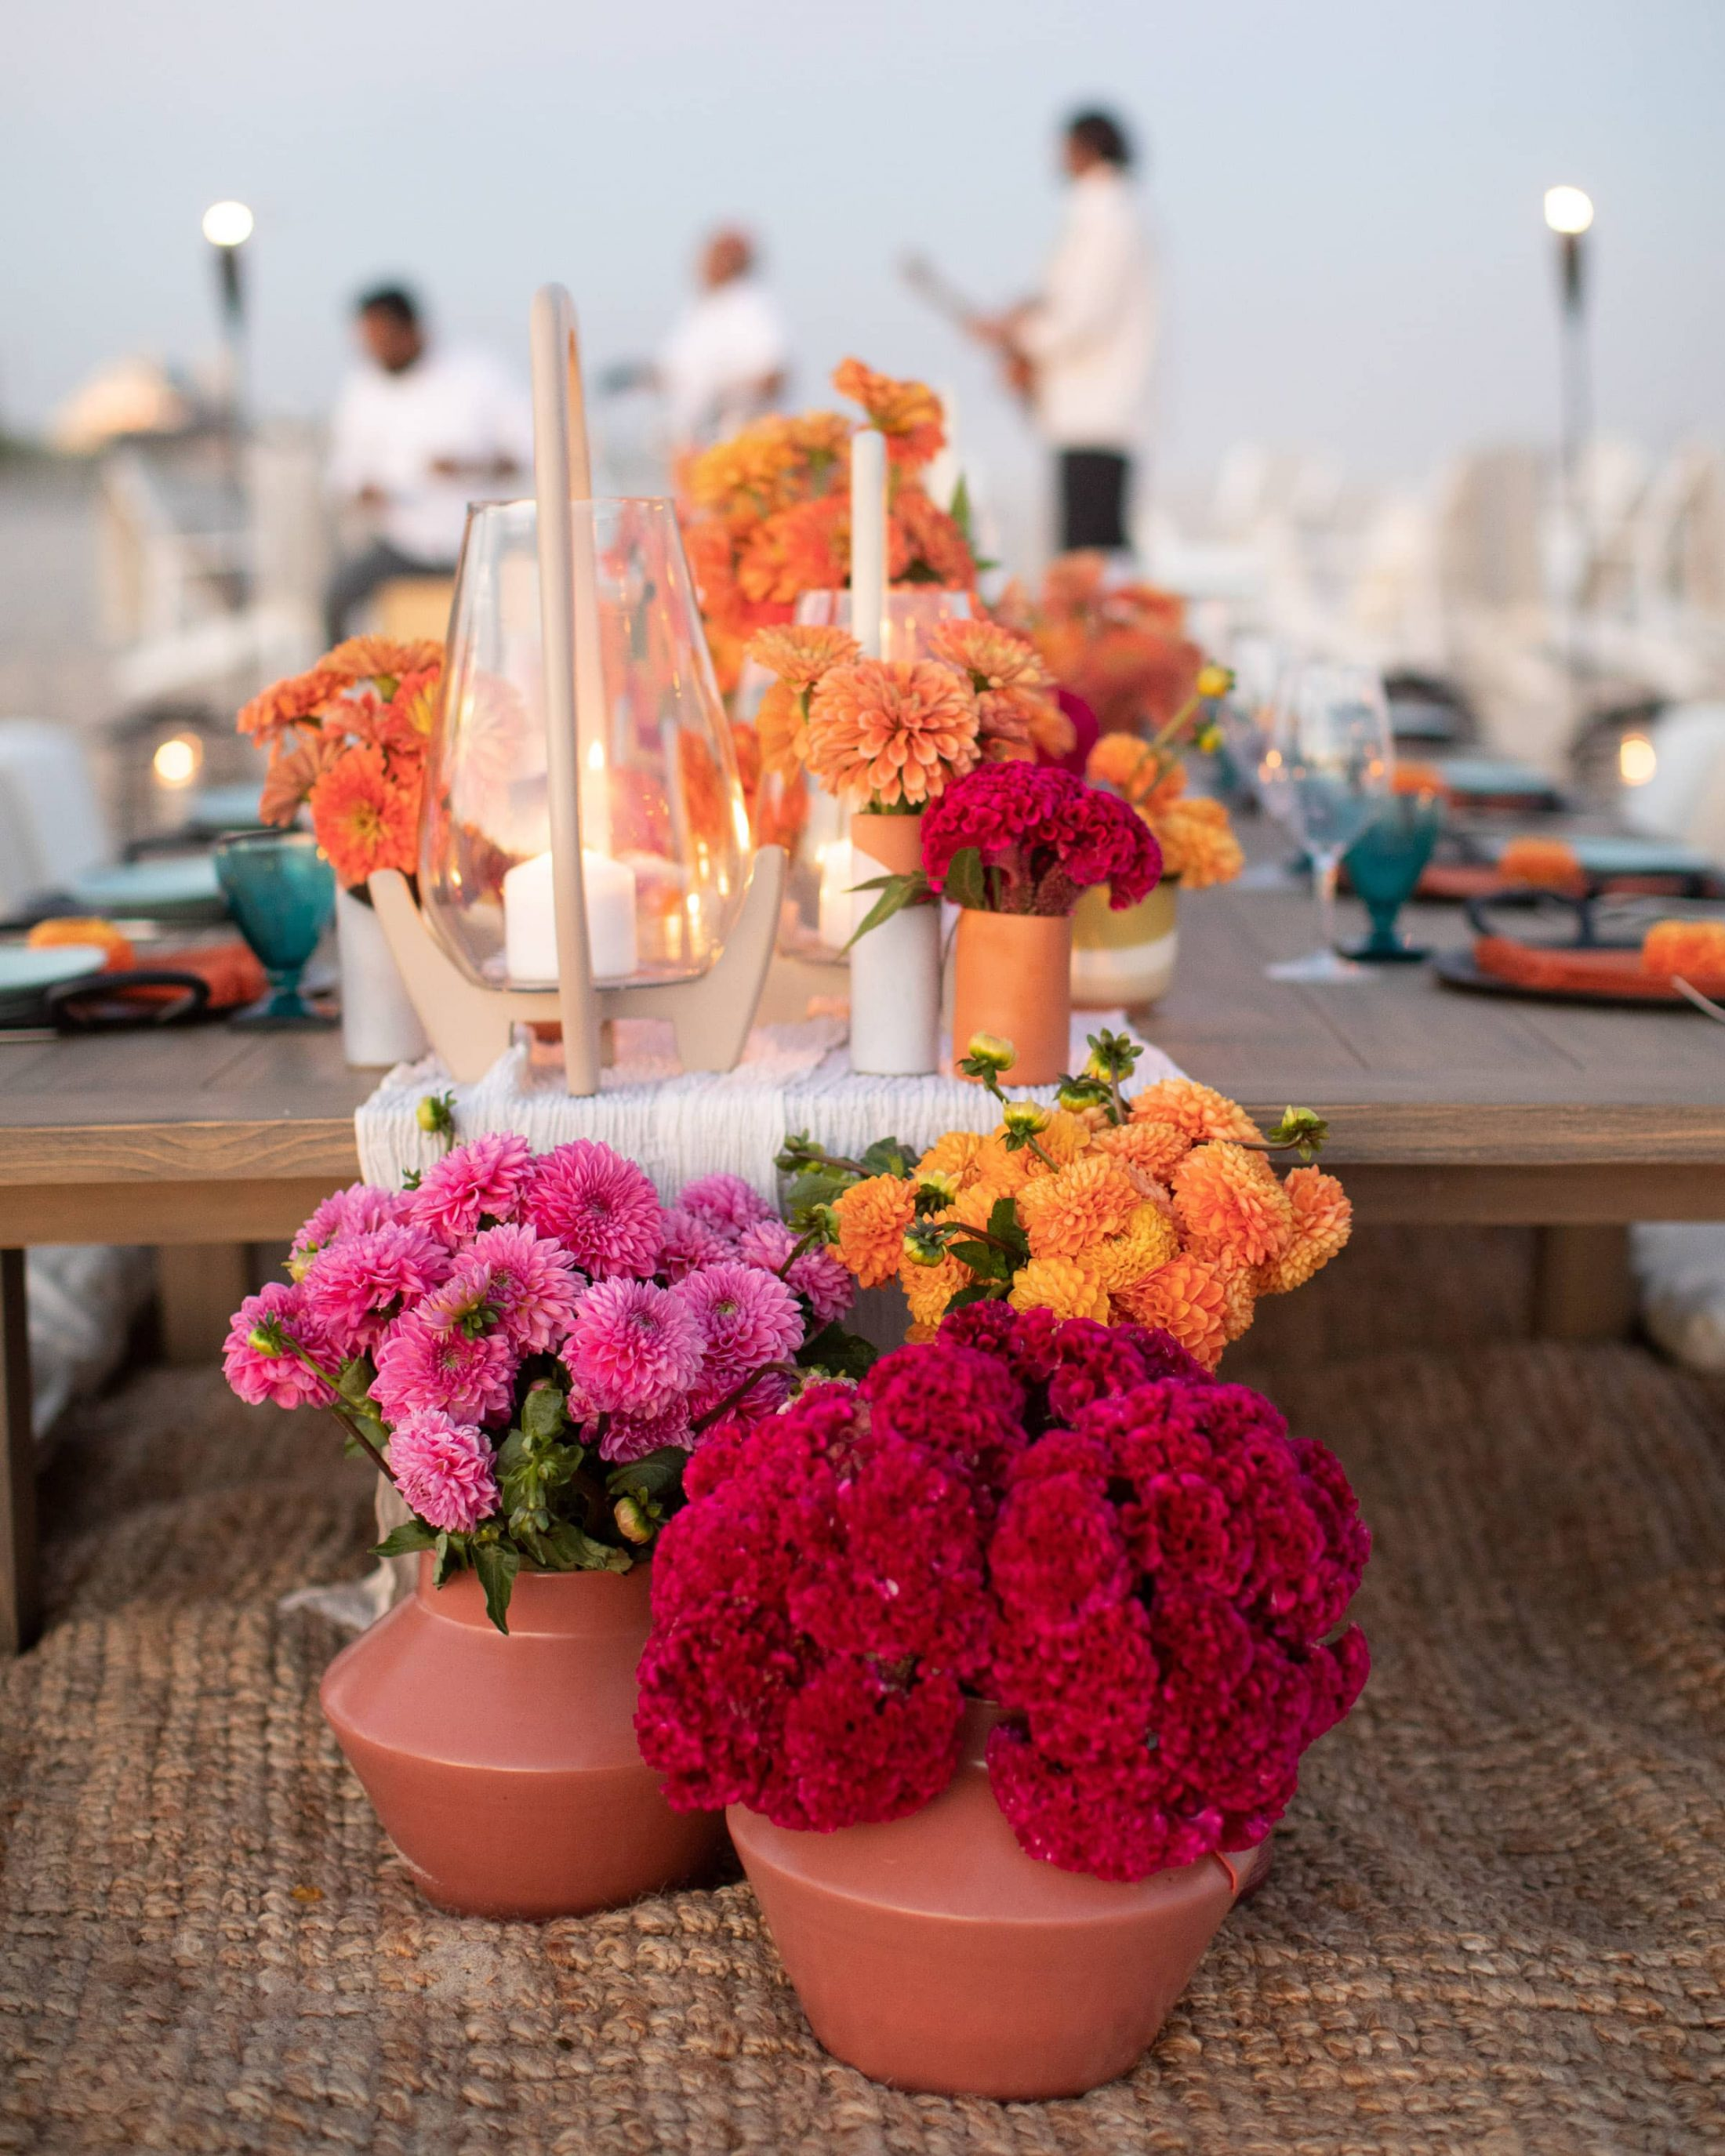 Floral decor at 40th birthday dinner on the beach in Southampton | Photo by Luis Zepeda